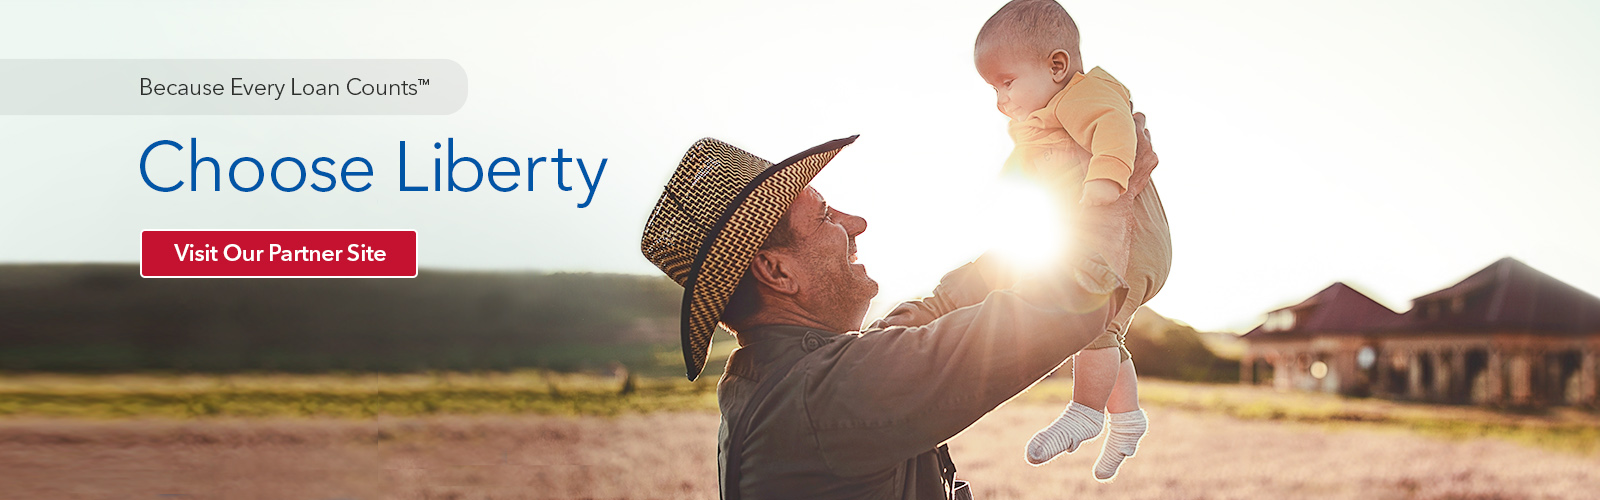 Because Every Loan Counts, Choose Liberty. Click to visit our Business Partner Web Site.